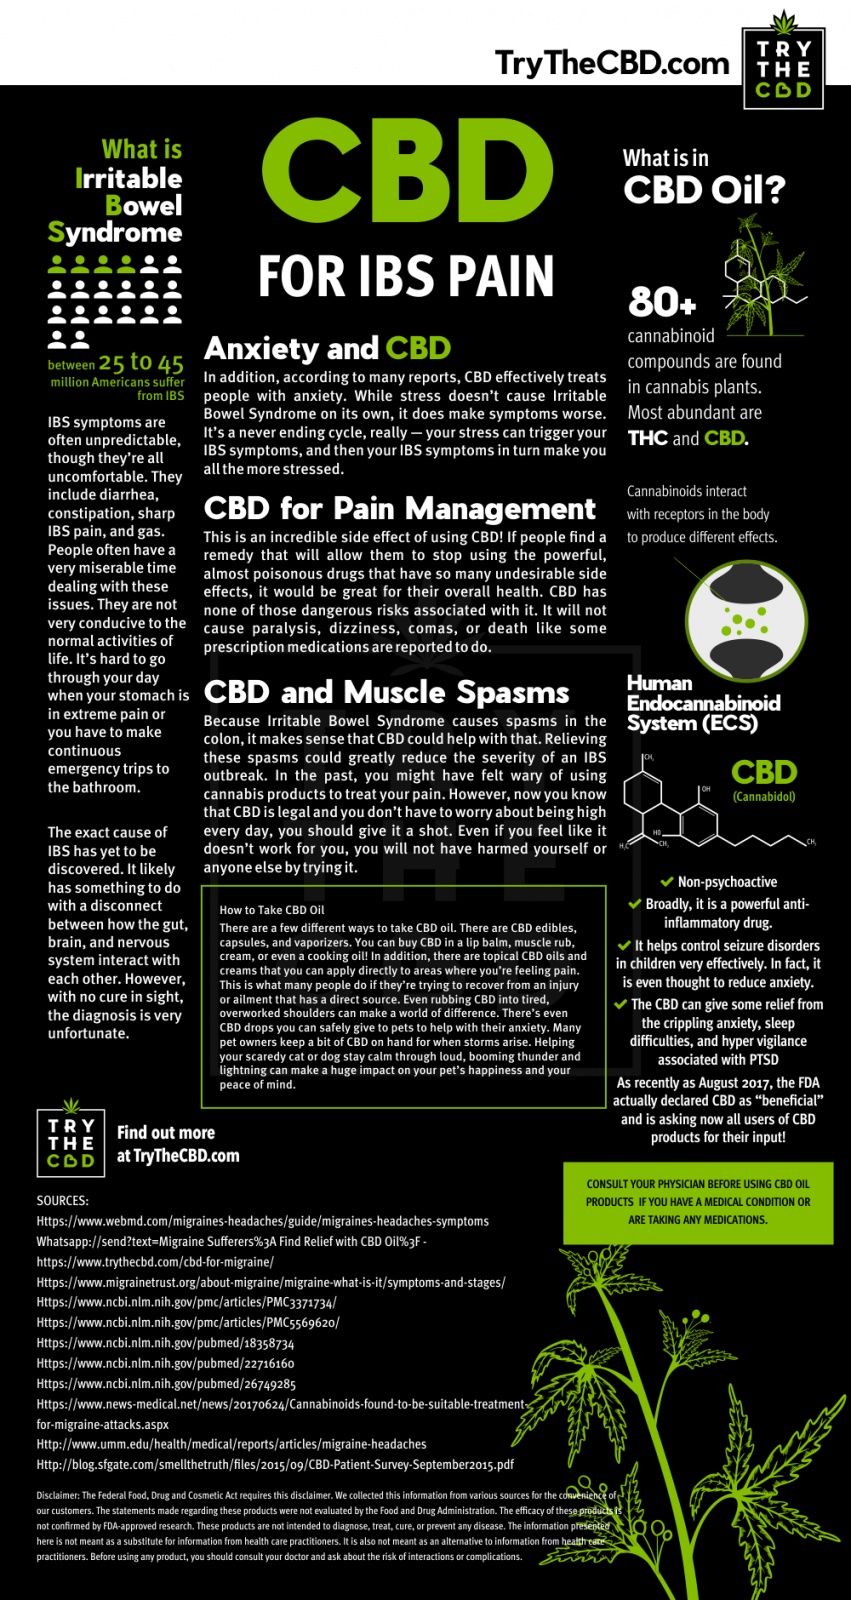 Can CBD Oil be used to treat IBS pains?